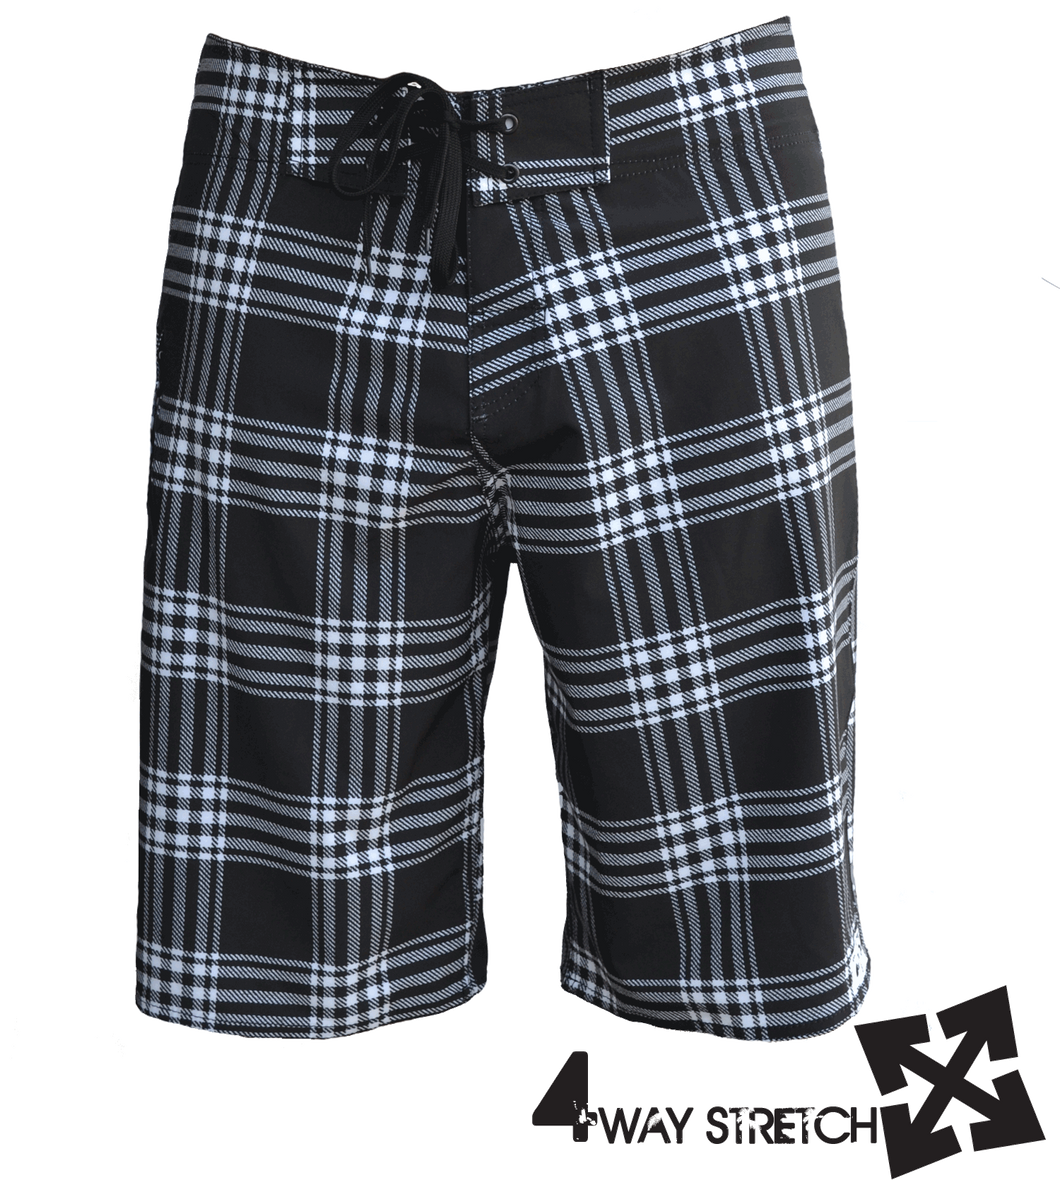 KRAKEN 4-way stretch boardshort